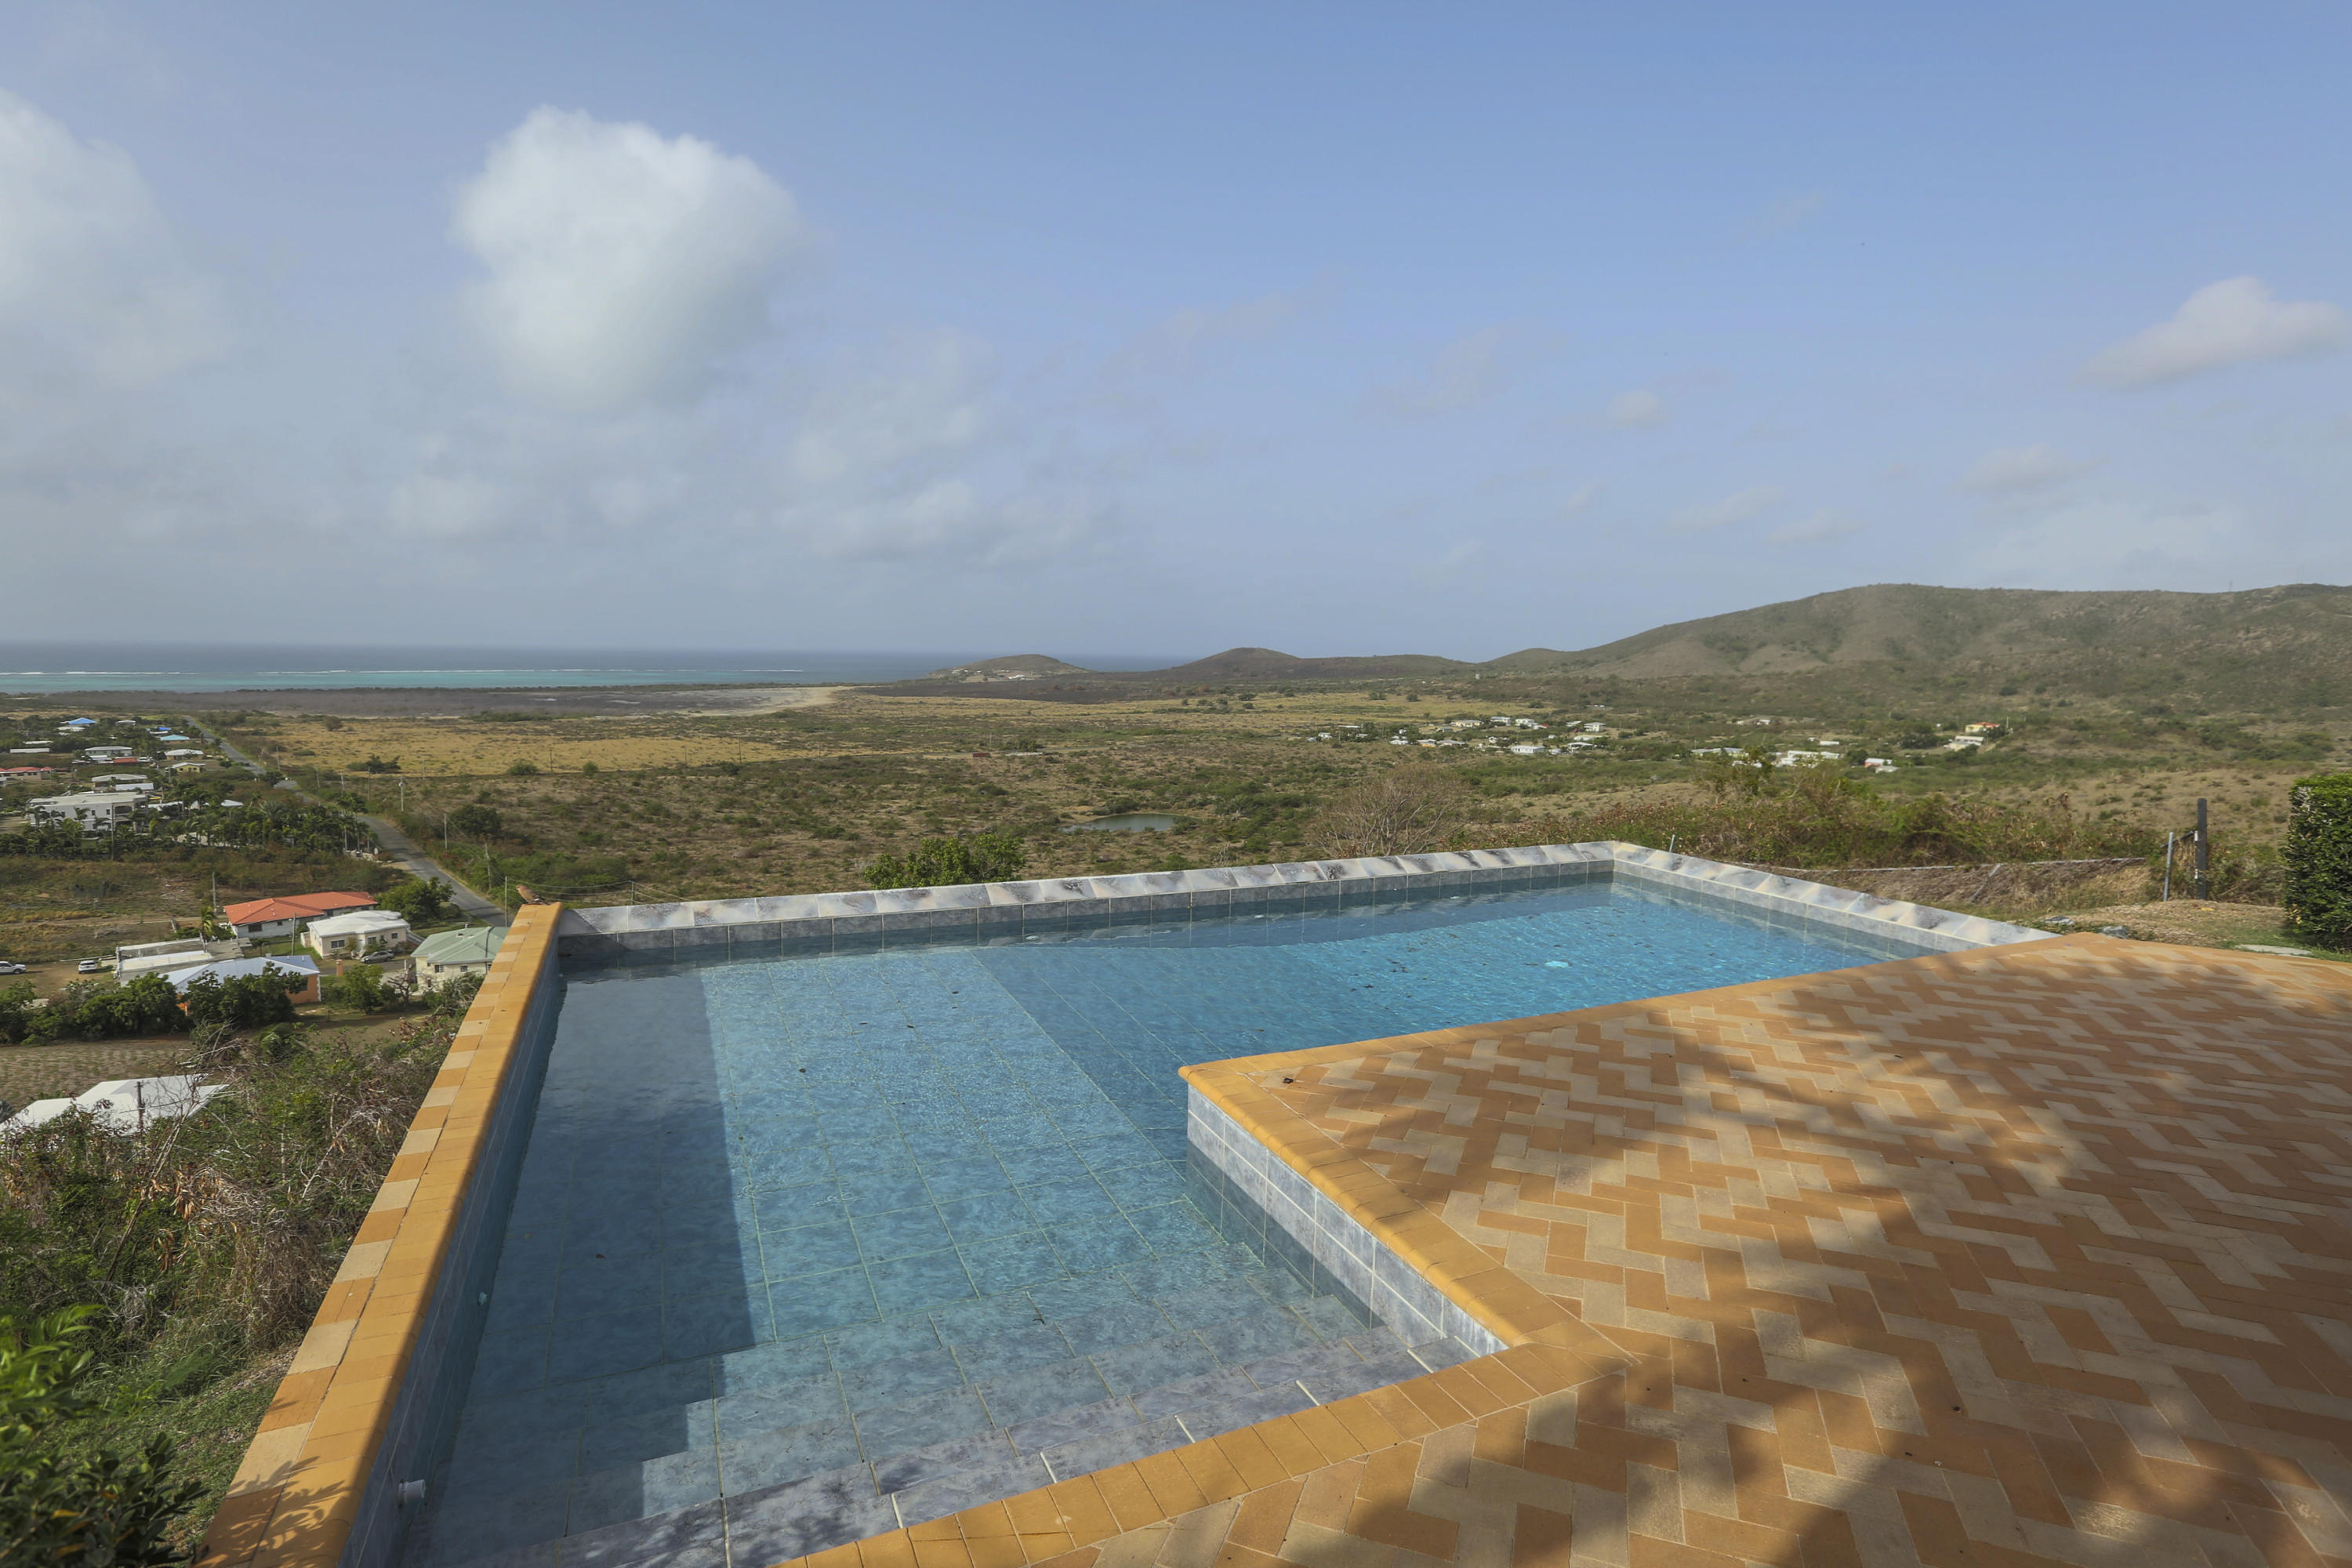 Pool on top of the world